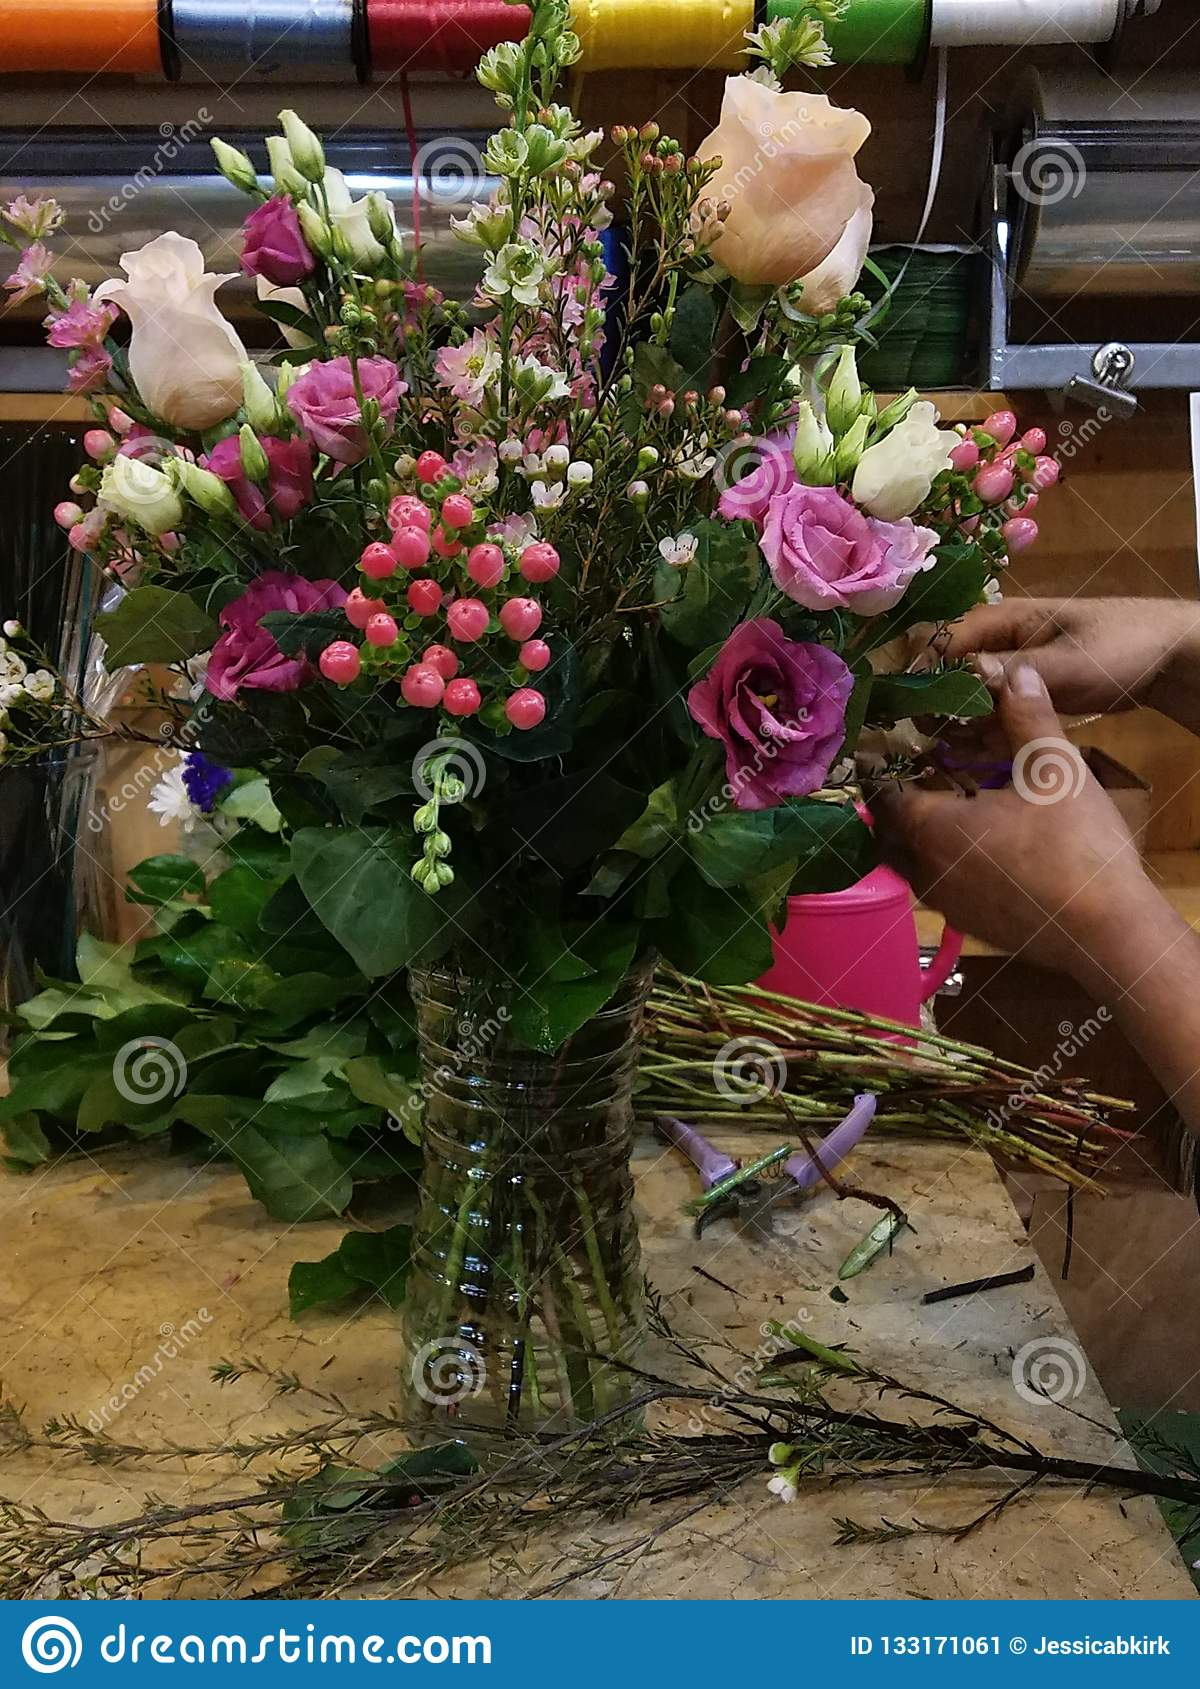 Creating a floral bouquet with mixed pink colors at the flower shop. Florist hands working diverse ethnicity.